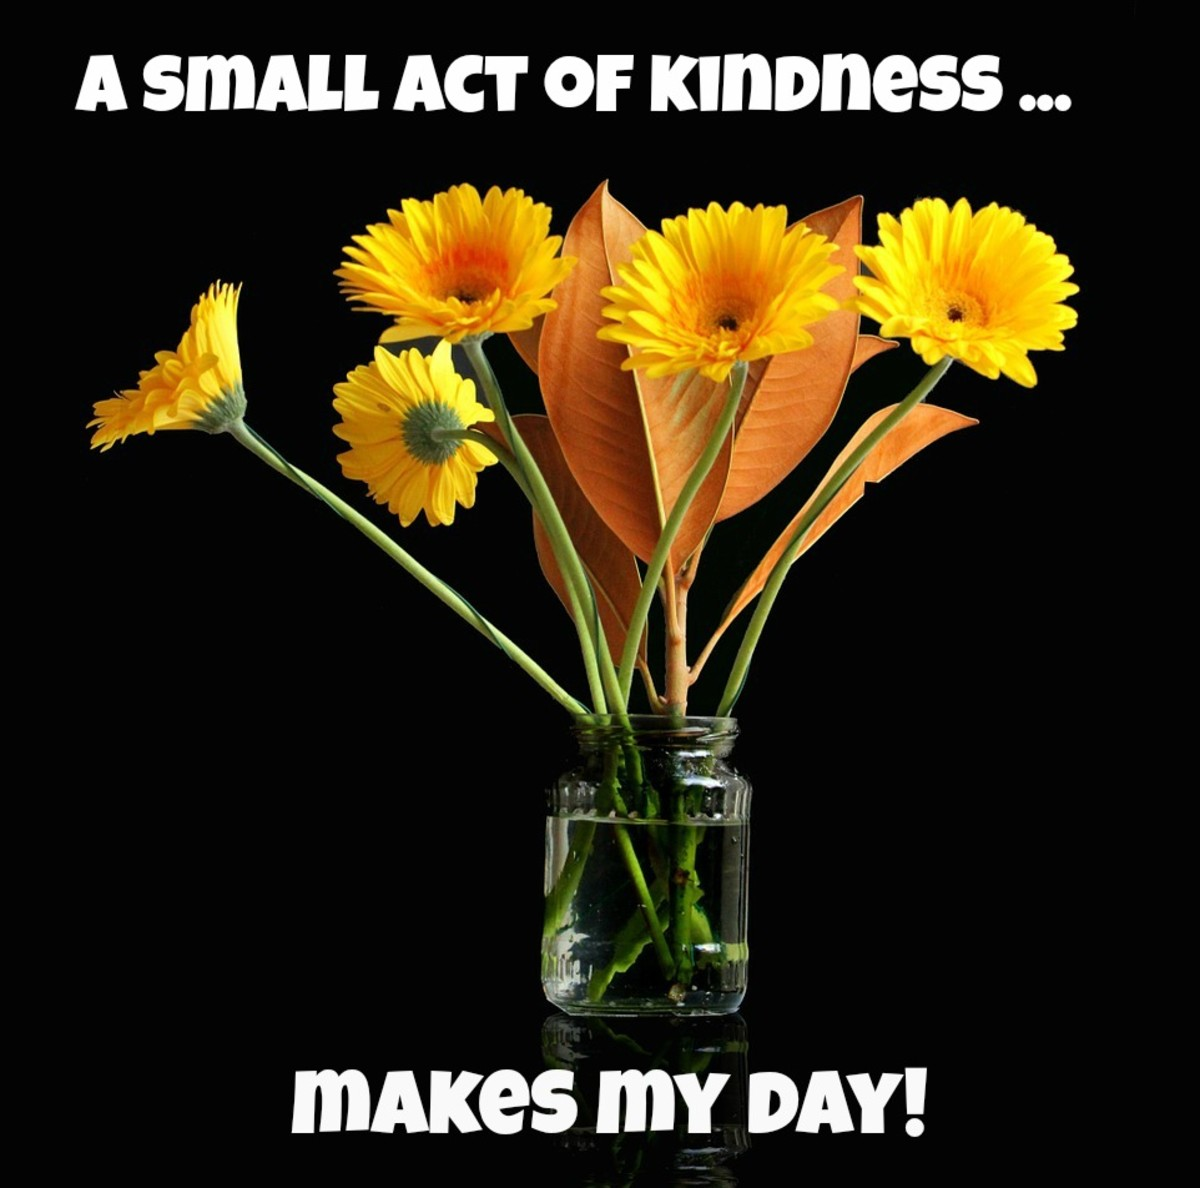 A small act of kindness--like a simple bouquet  of daisies--can make someone's day.